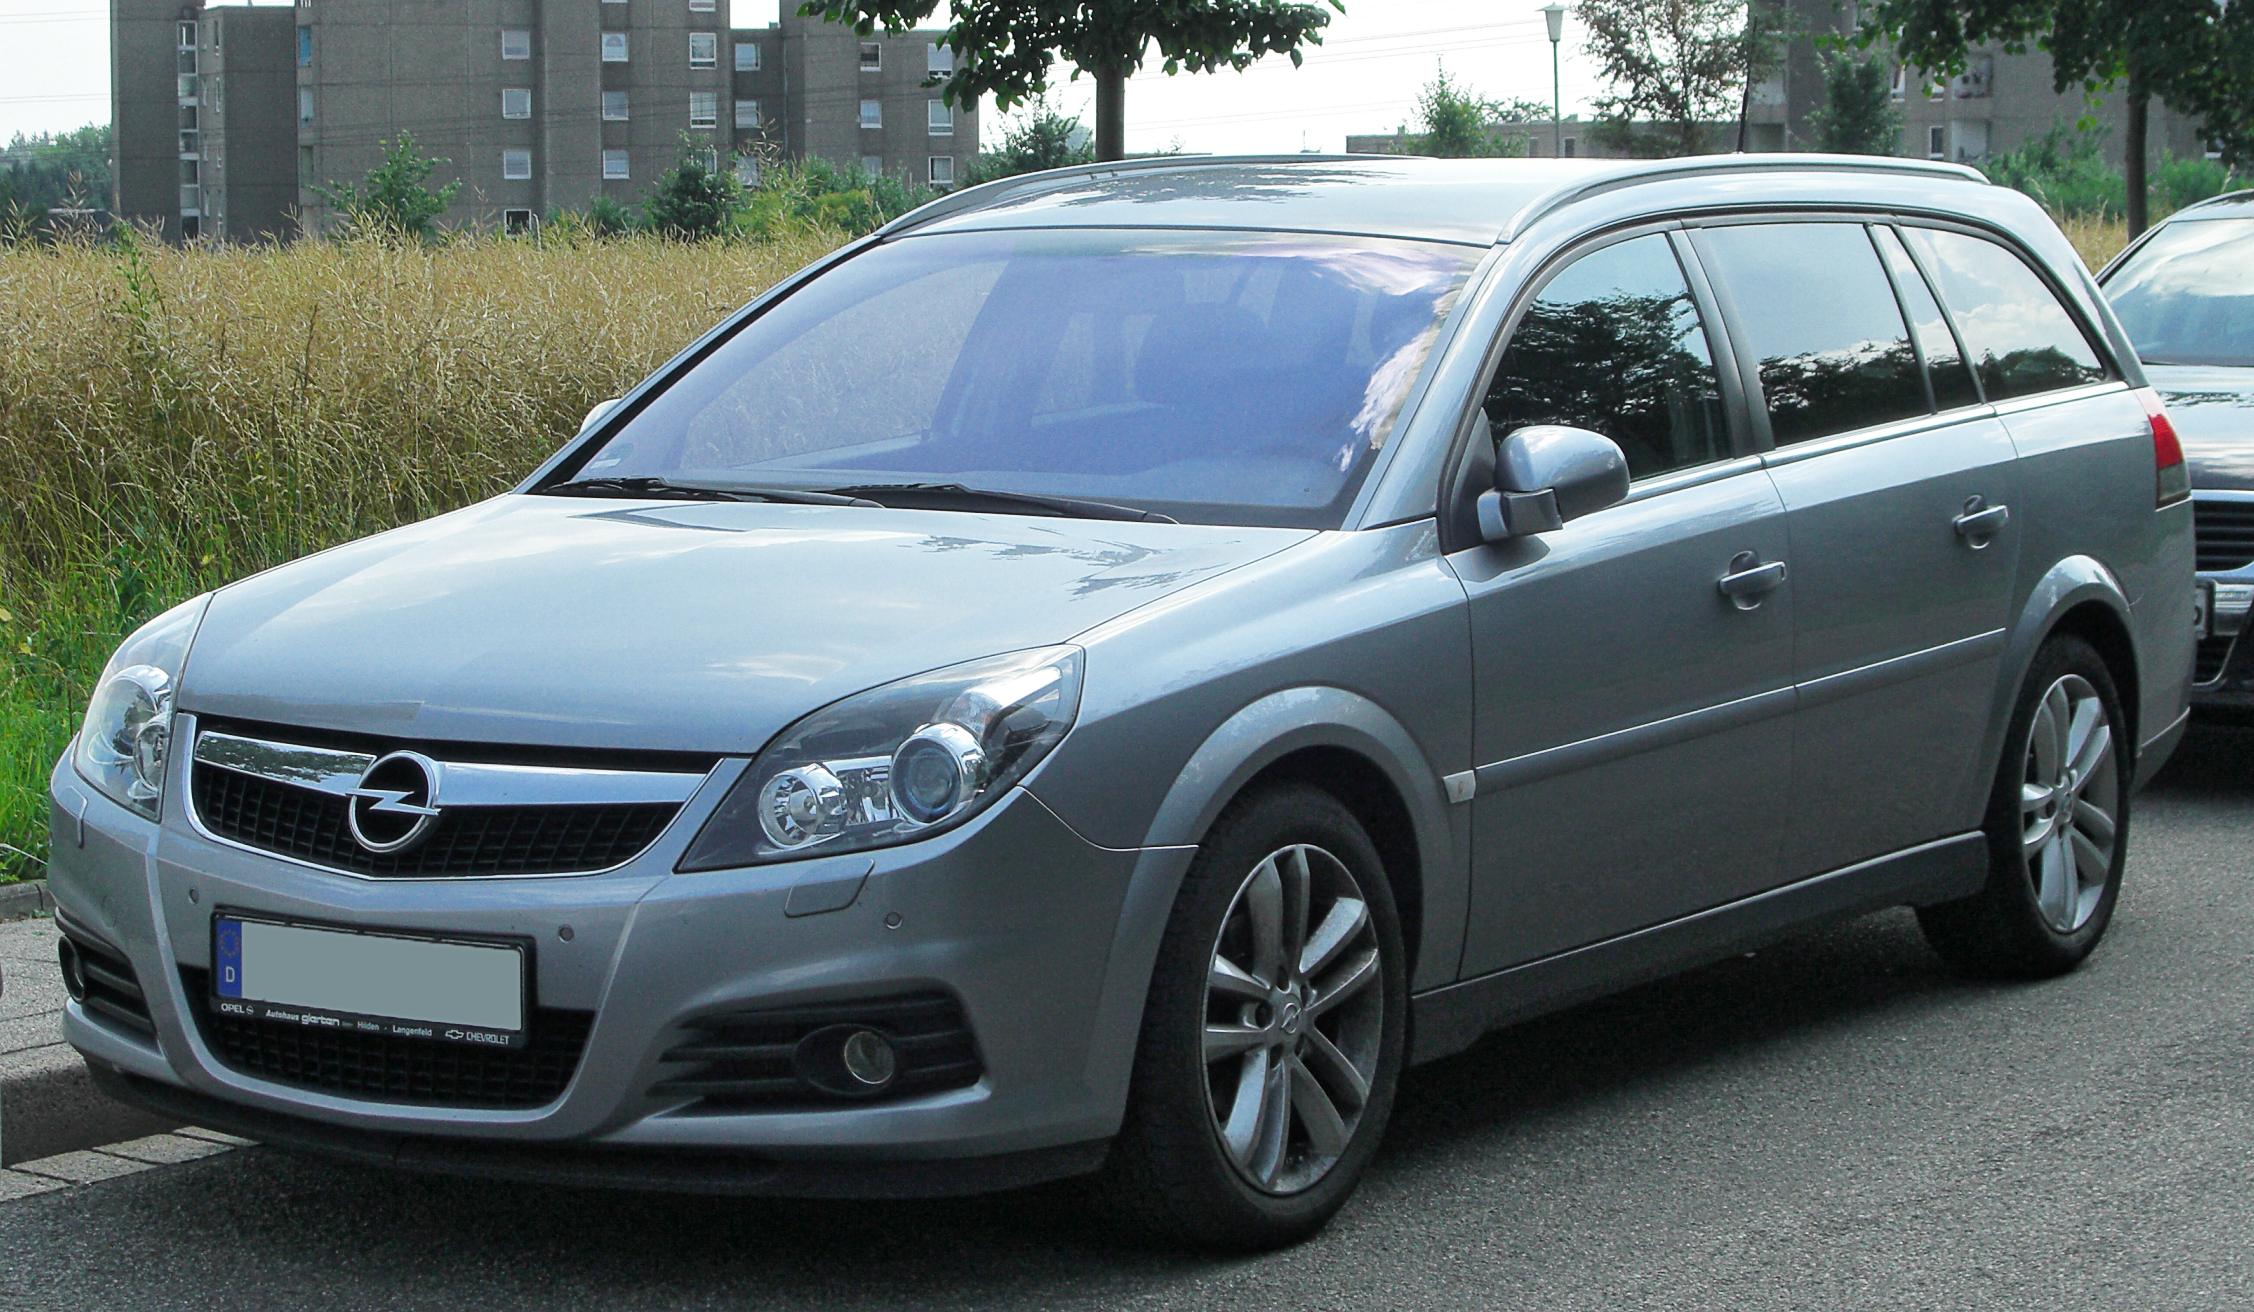 2002 opel vectra c ndash pictures information and specs wiring diagram opel vectra c